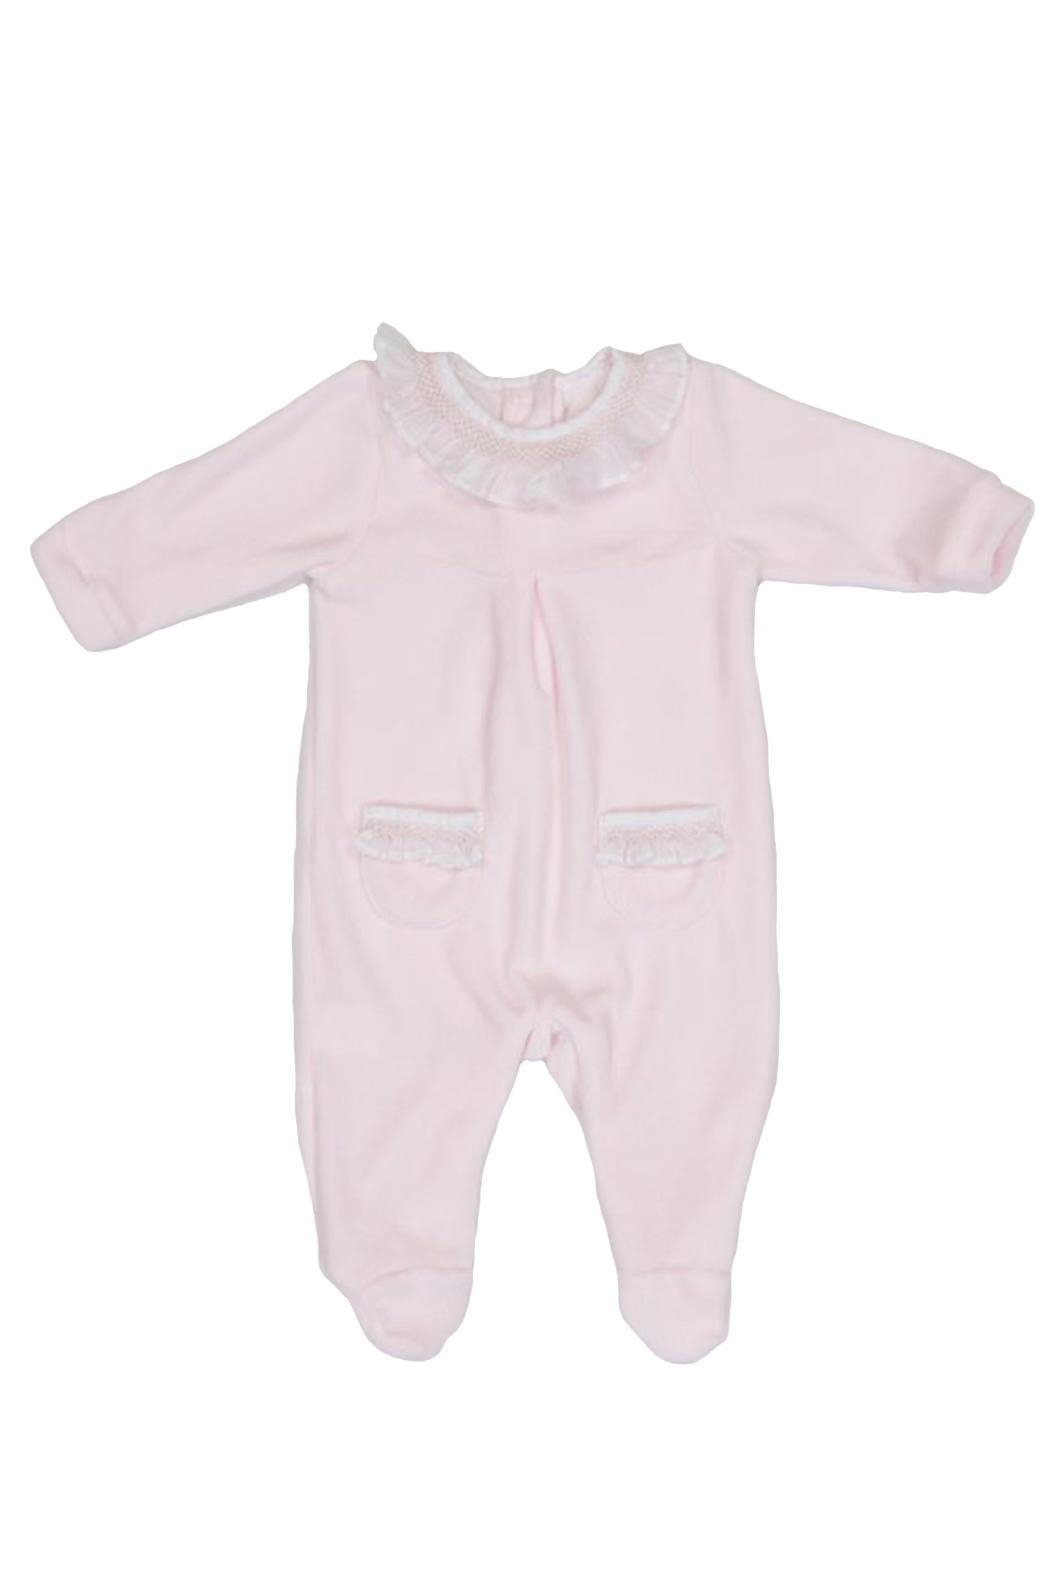 Malvi & Co. Pink Sleepsuit. - Main Image